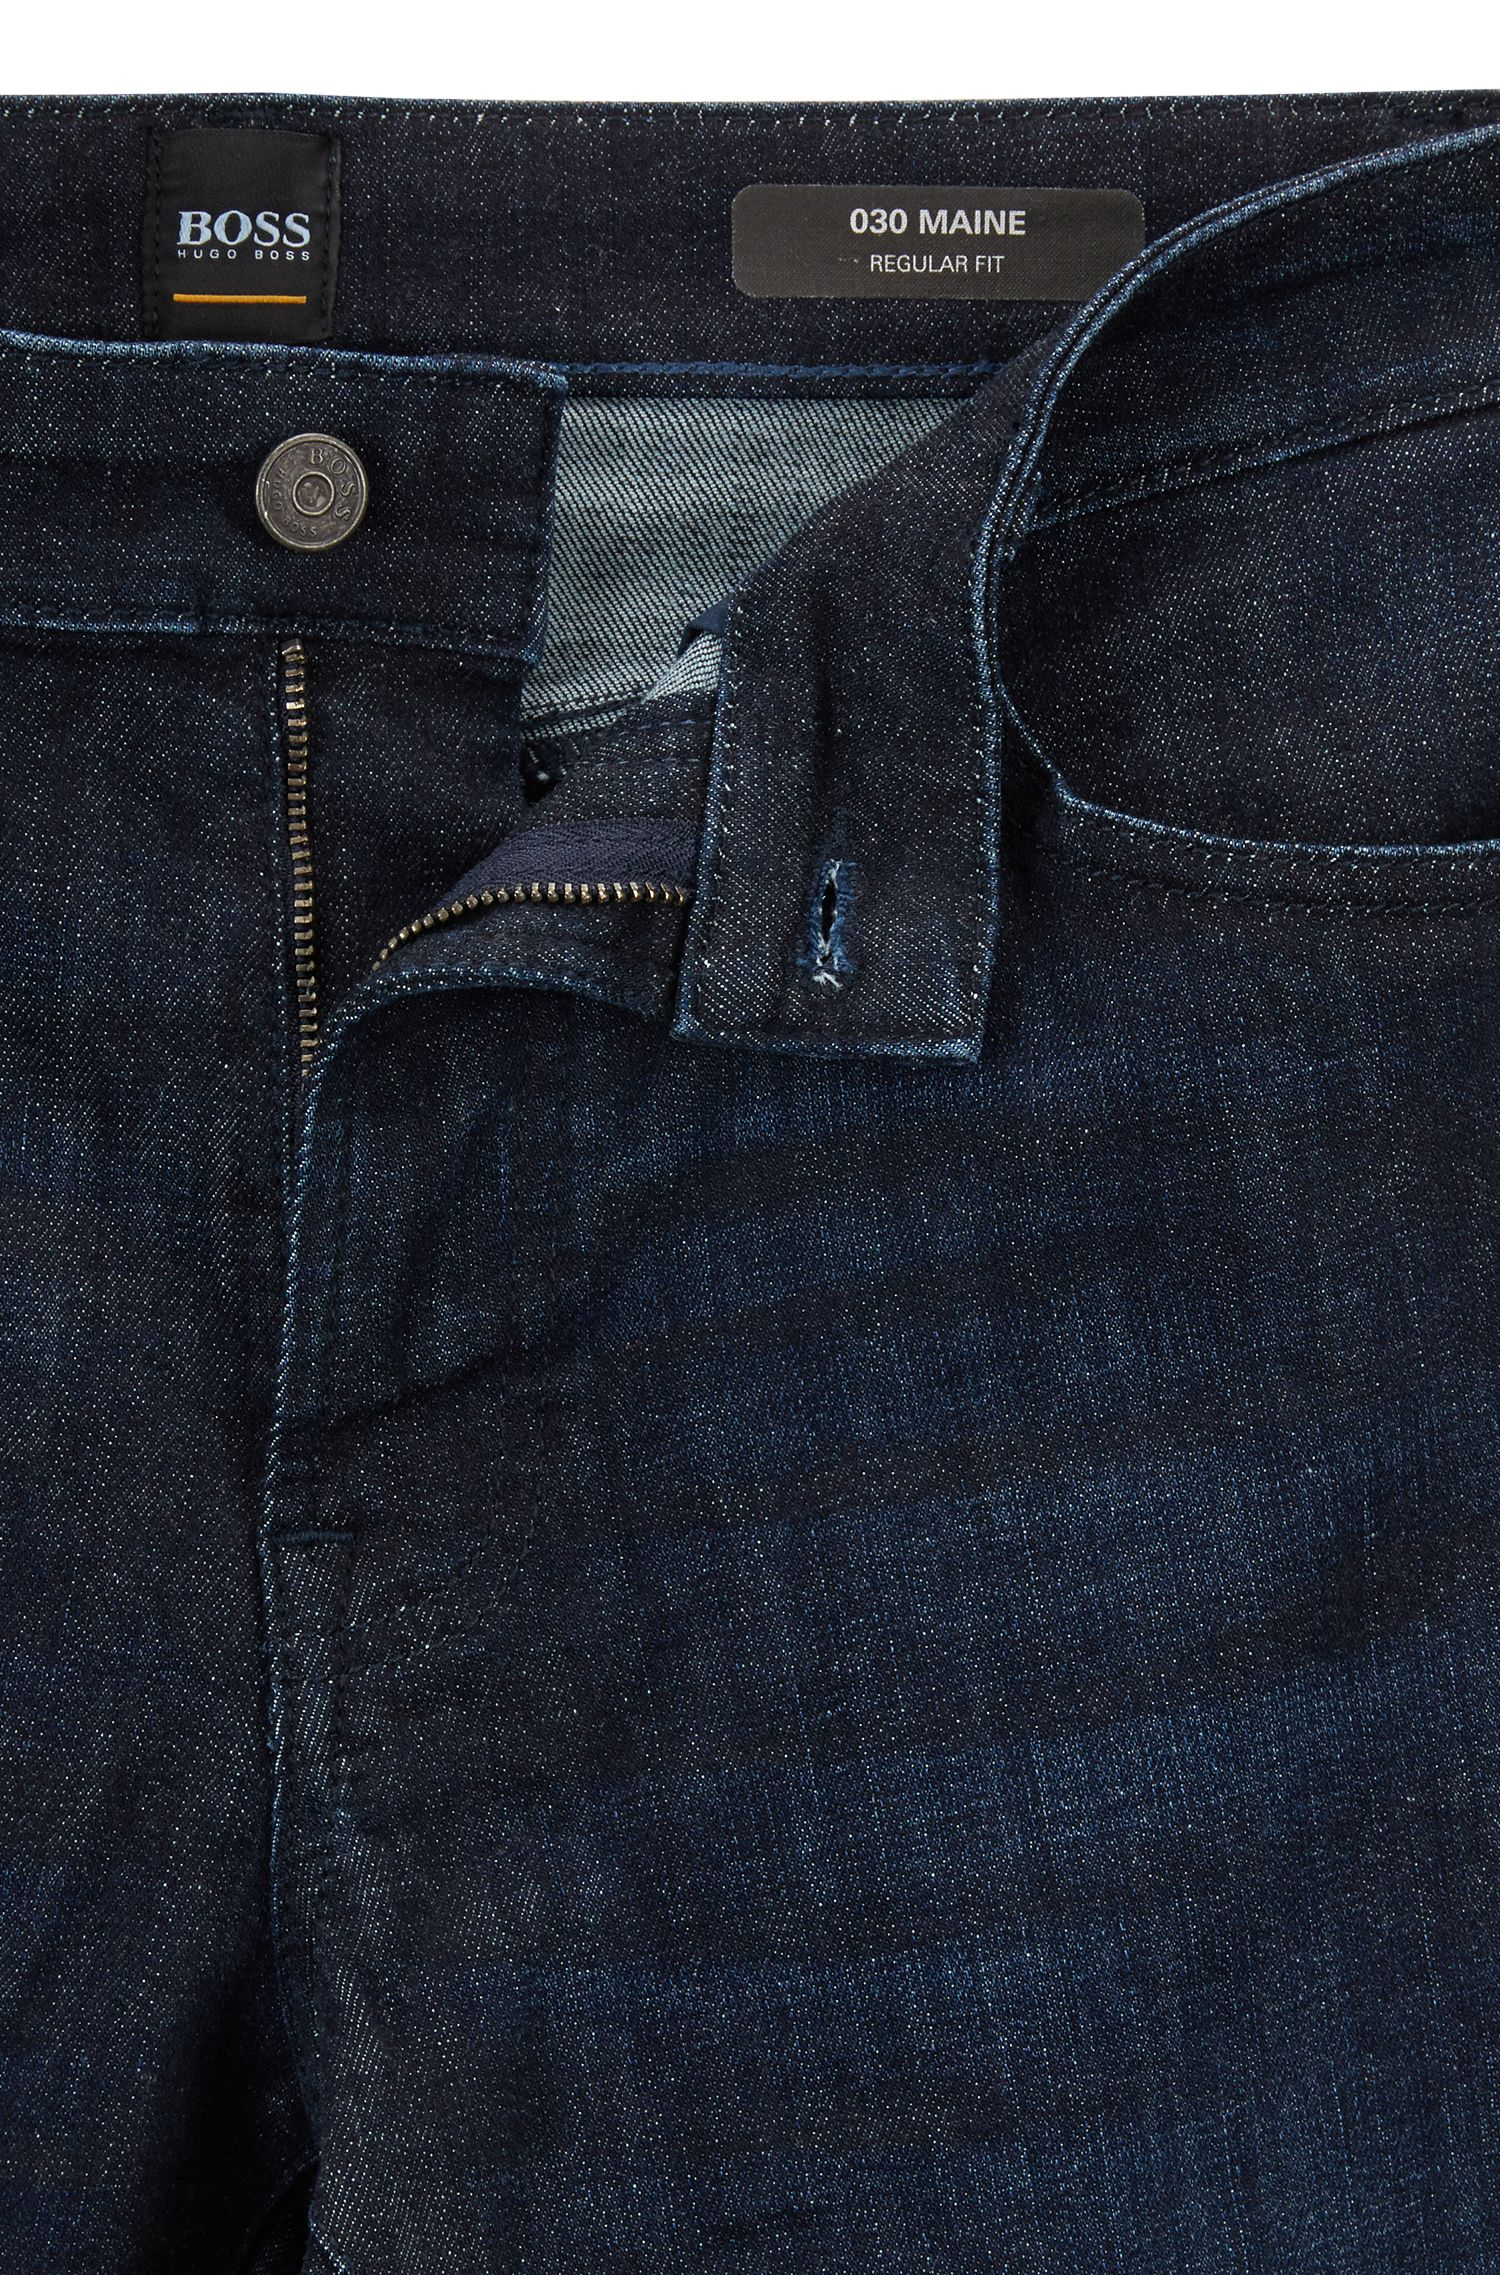 Jean Regular Fit en denim selvedge stretch, Bleu foncé